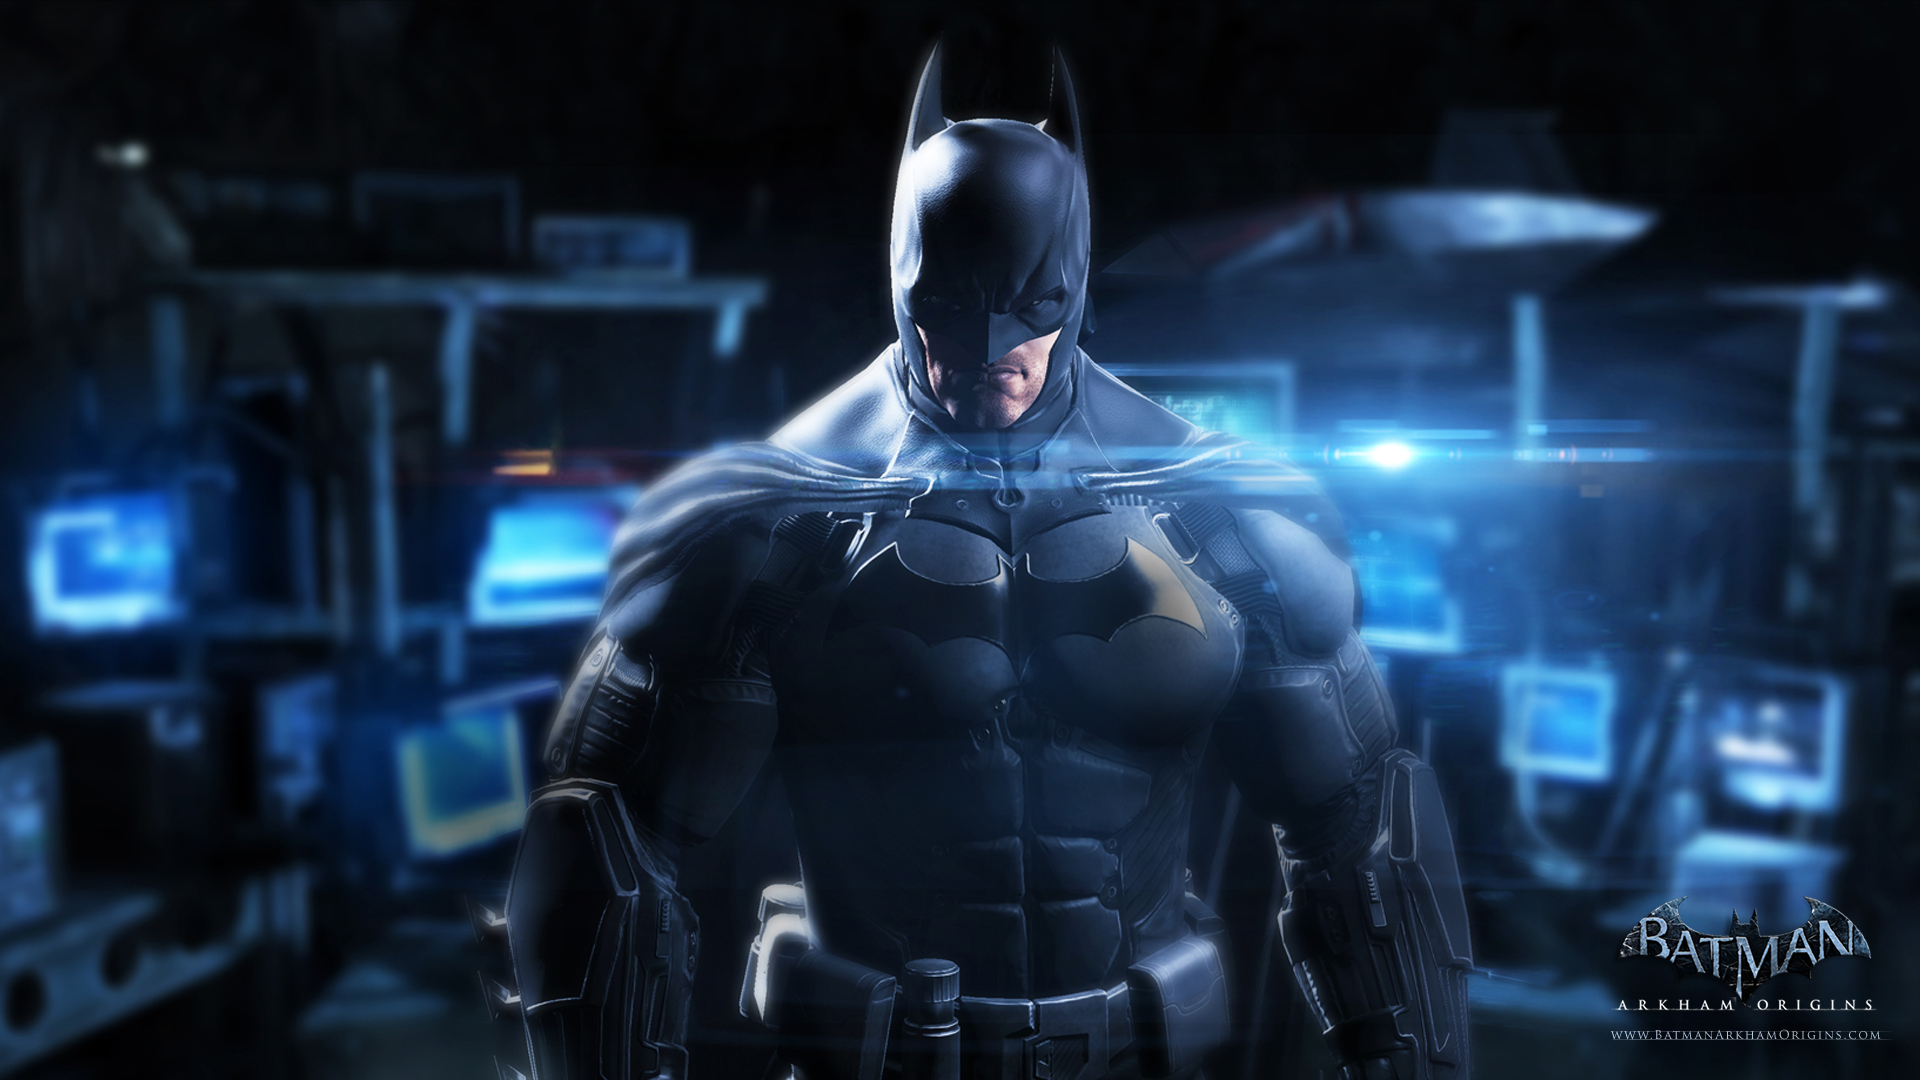 batman arkham origins computer wallpapers desktop